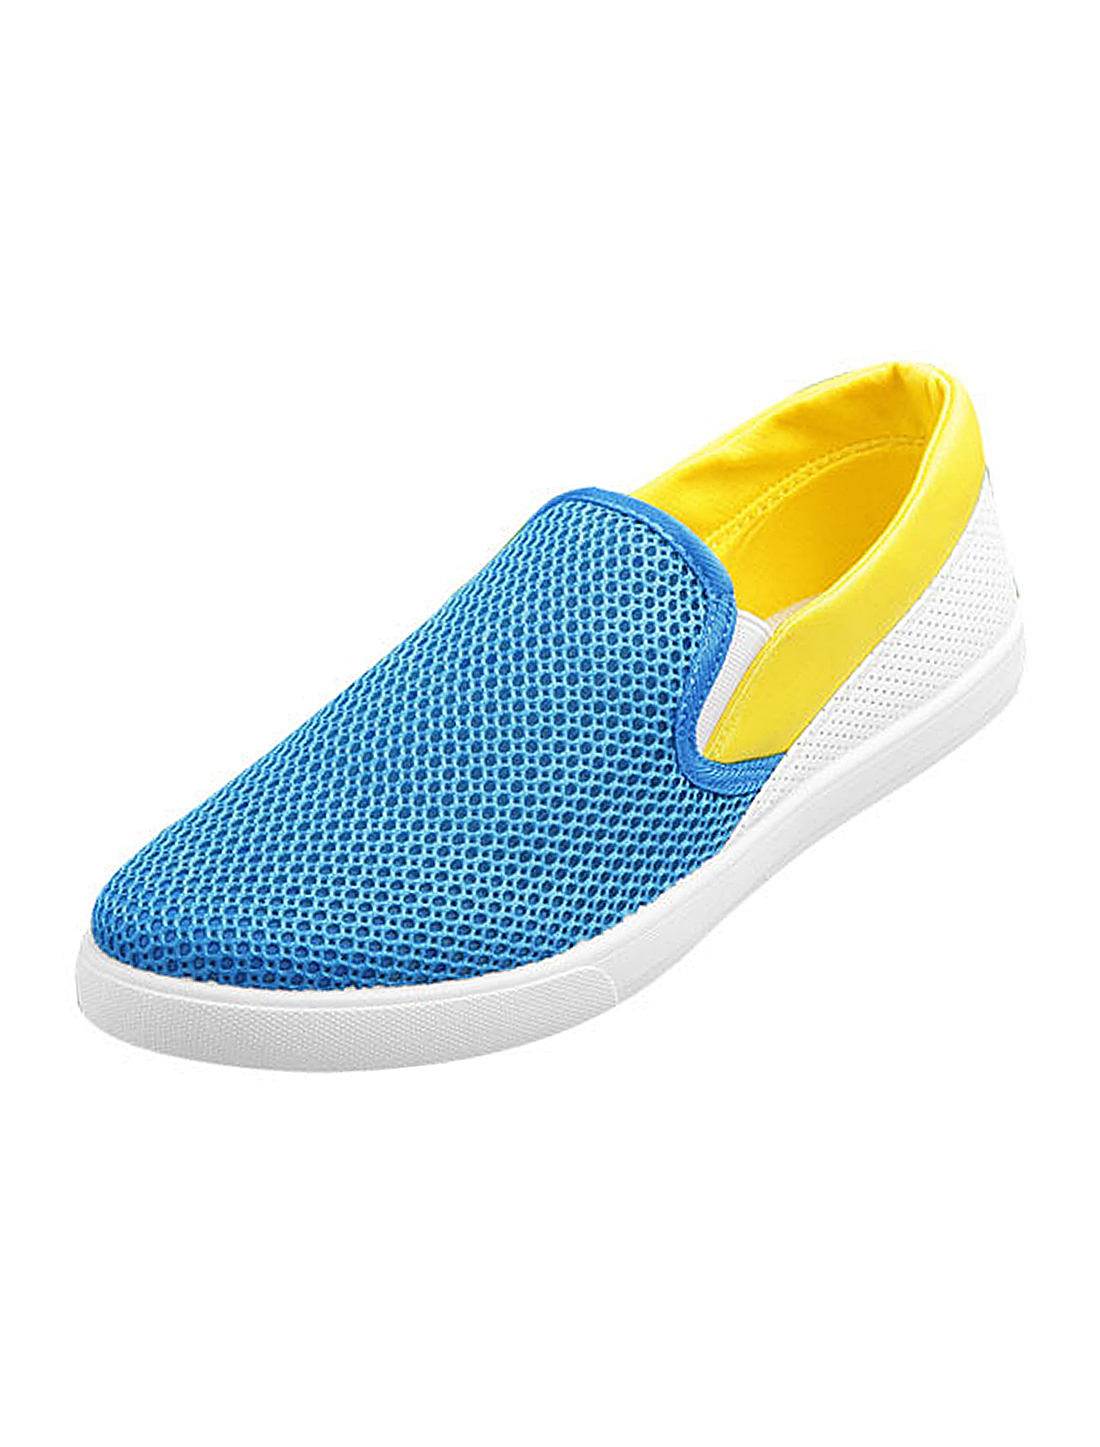 Men Featuring Fashion Style Sneaker Casual Shoes Yellow Blue 11 US Size